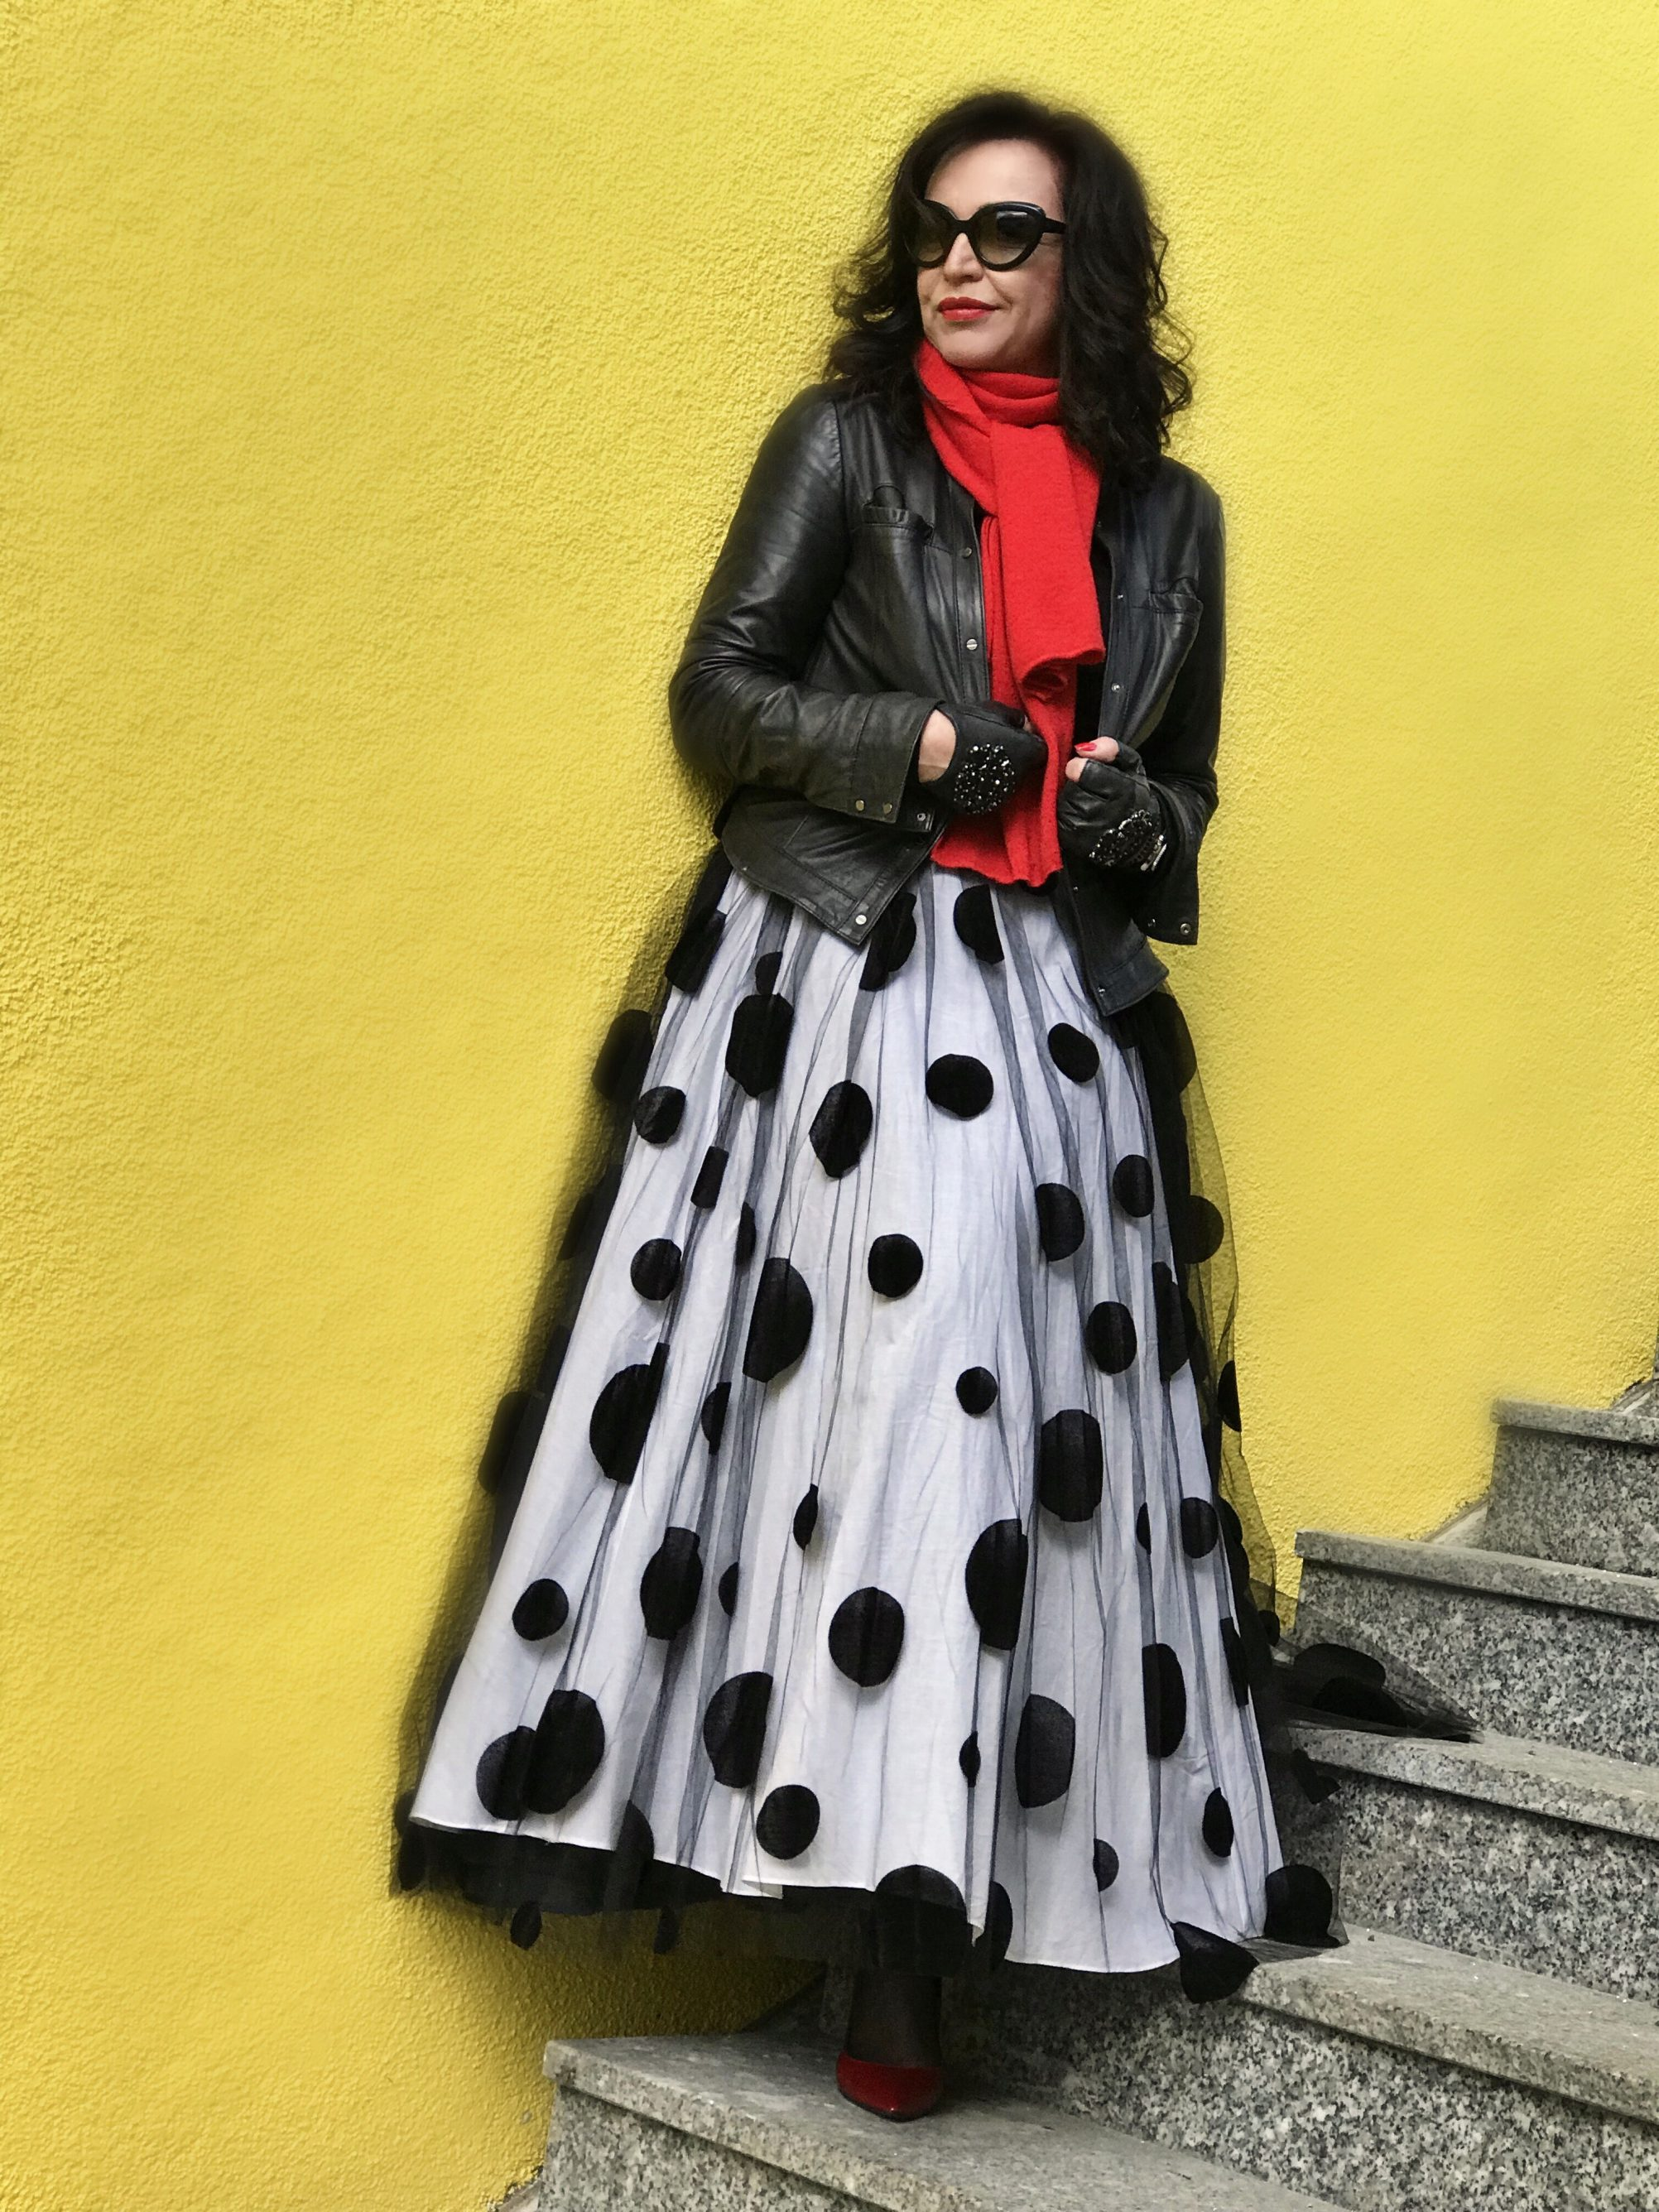 Tull skirt with Polka dots